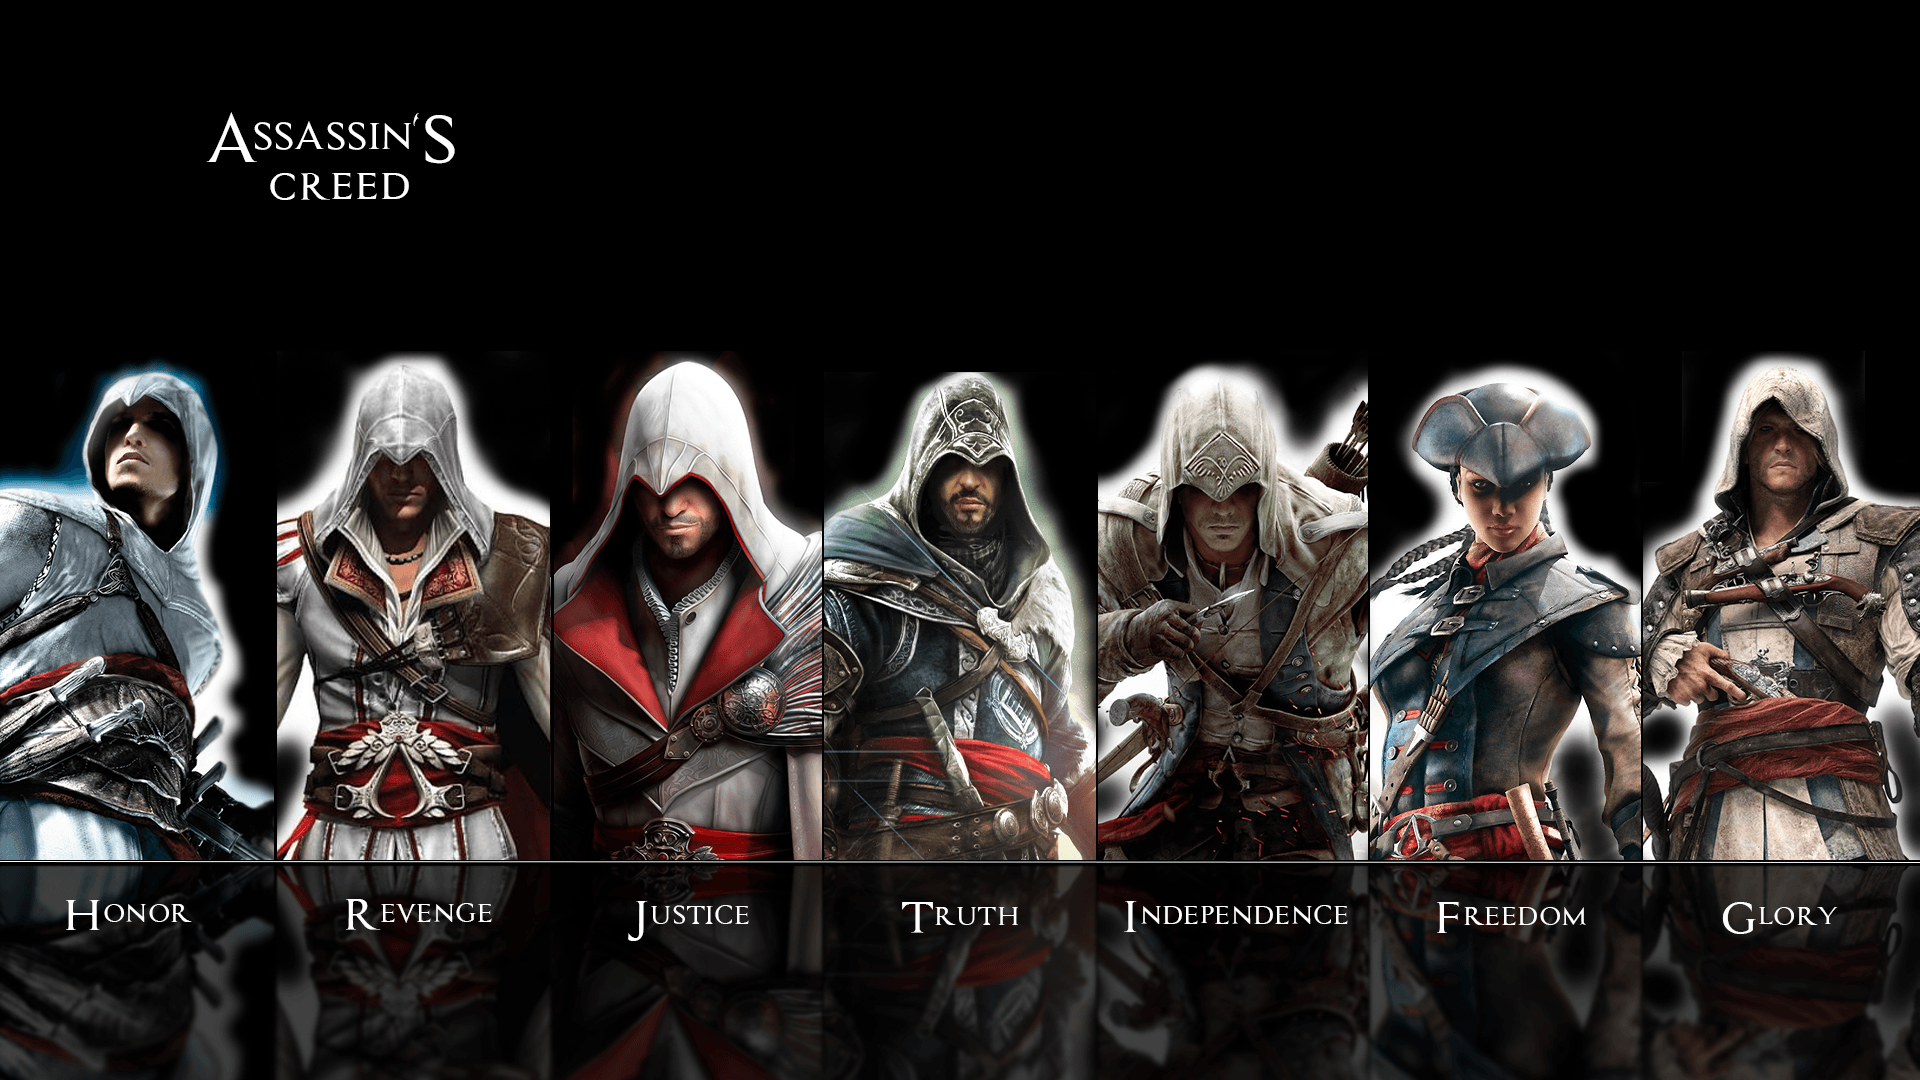 epicwallpaperz.com/wallpaper-hd/assassin-creed-wal...